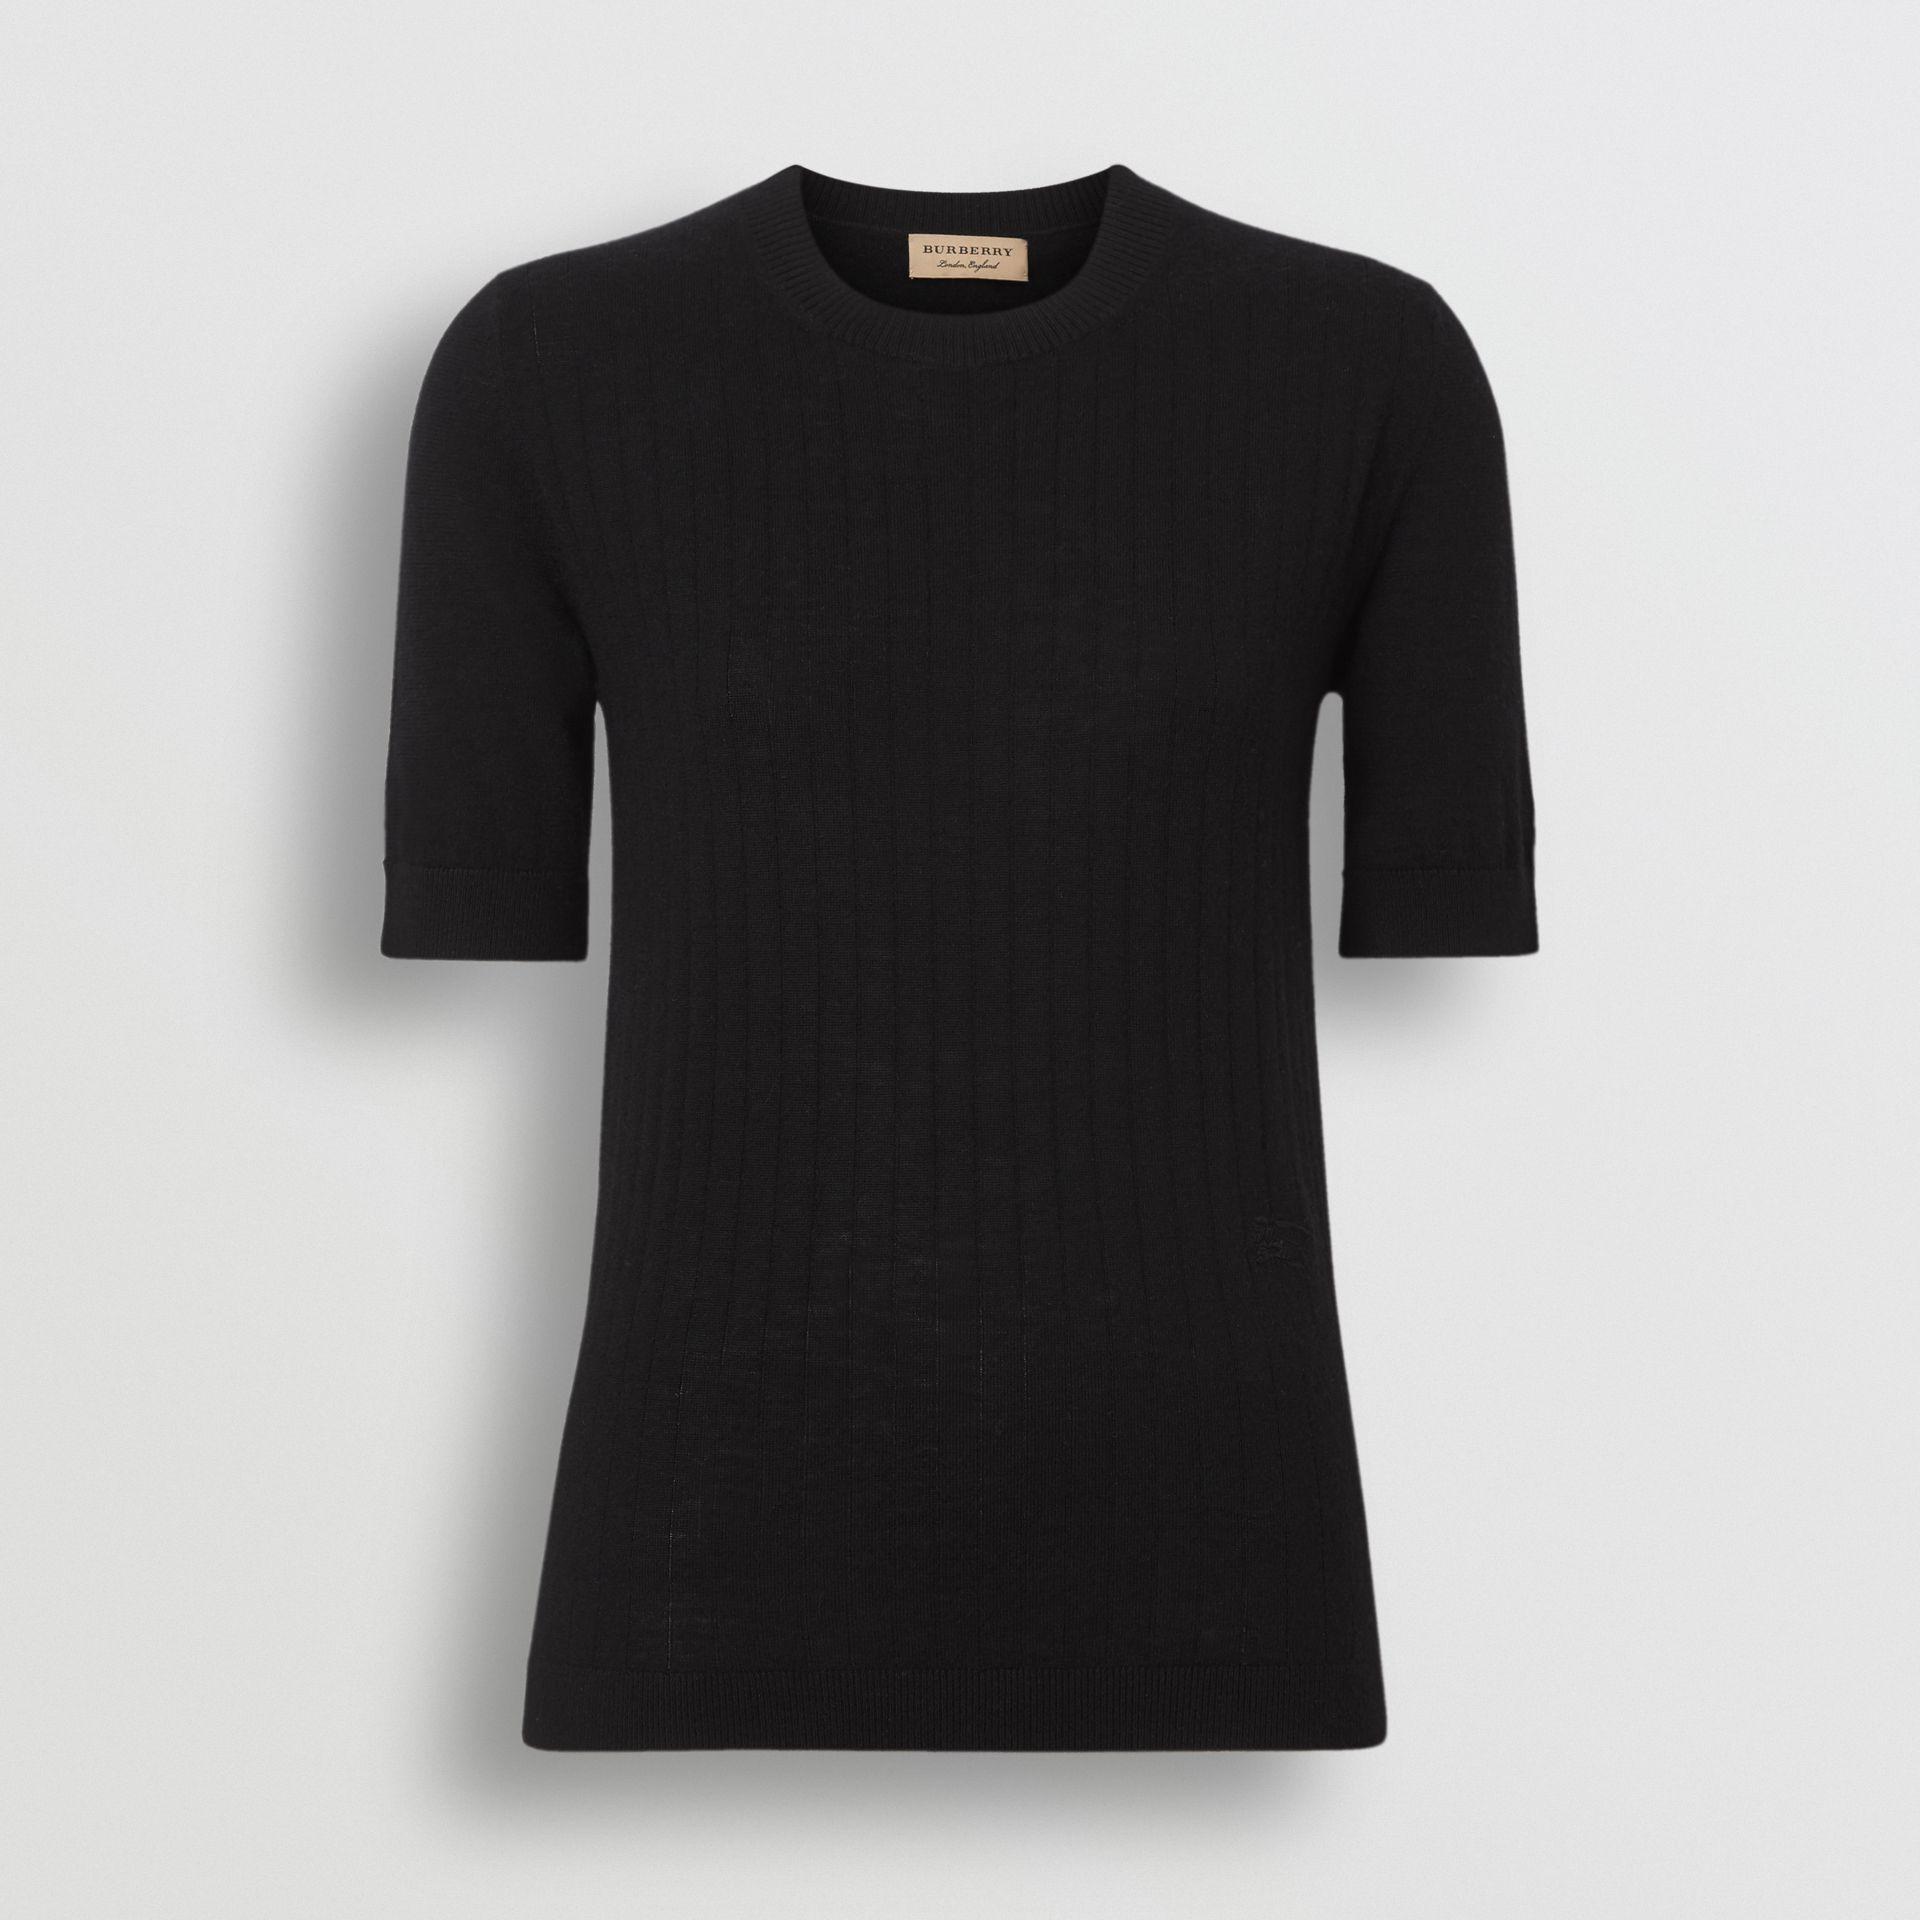 Short-sleeve Rib Knit Cashmere Sweater in Black - Women | Burberry - gallery image 3